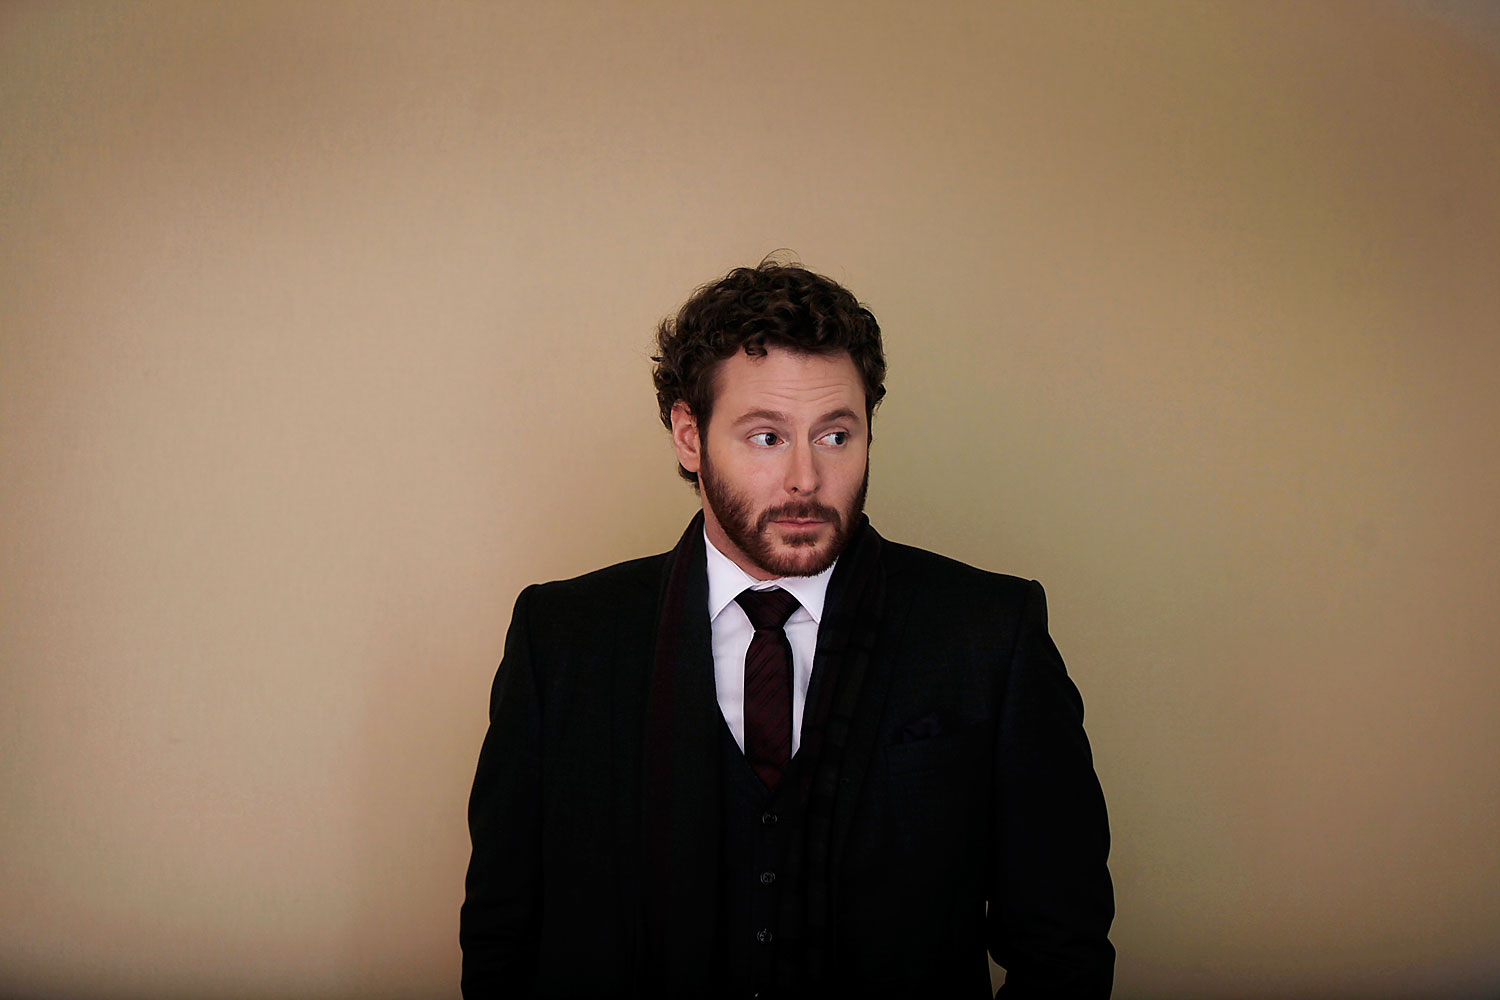 Sean Parker, co-founder of Napster Inc. and managing partner of the Founders Fund, stands for a photograph following a television interview on day three of the World Economic Forum in Davos, Switzerland in 2012